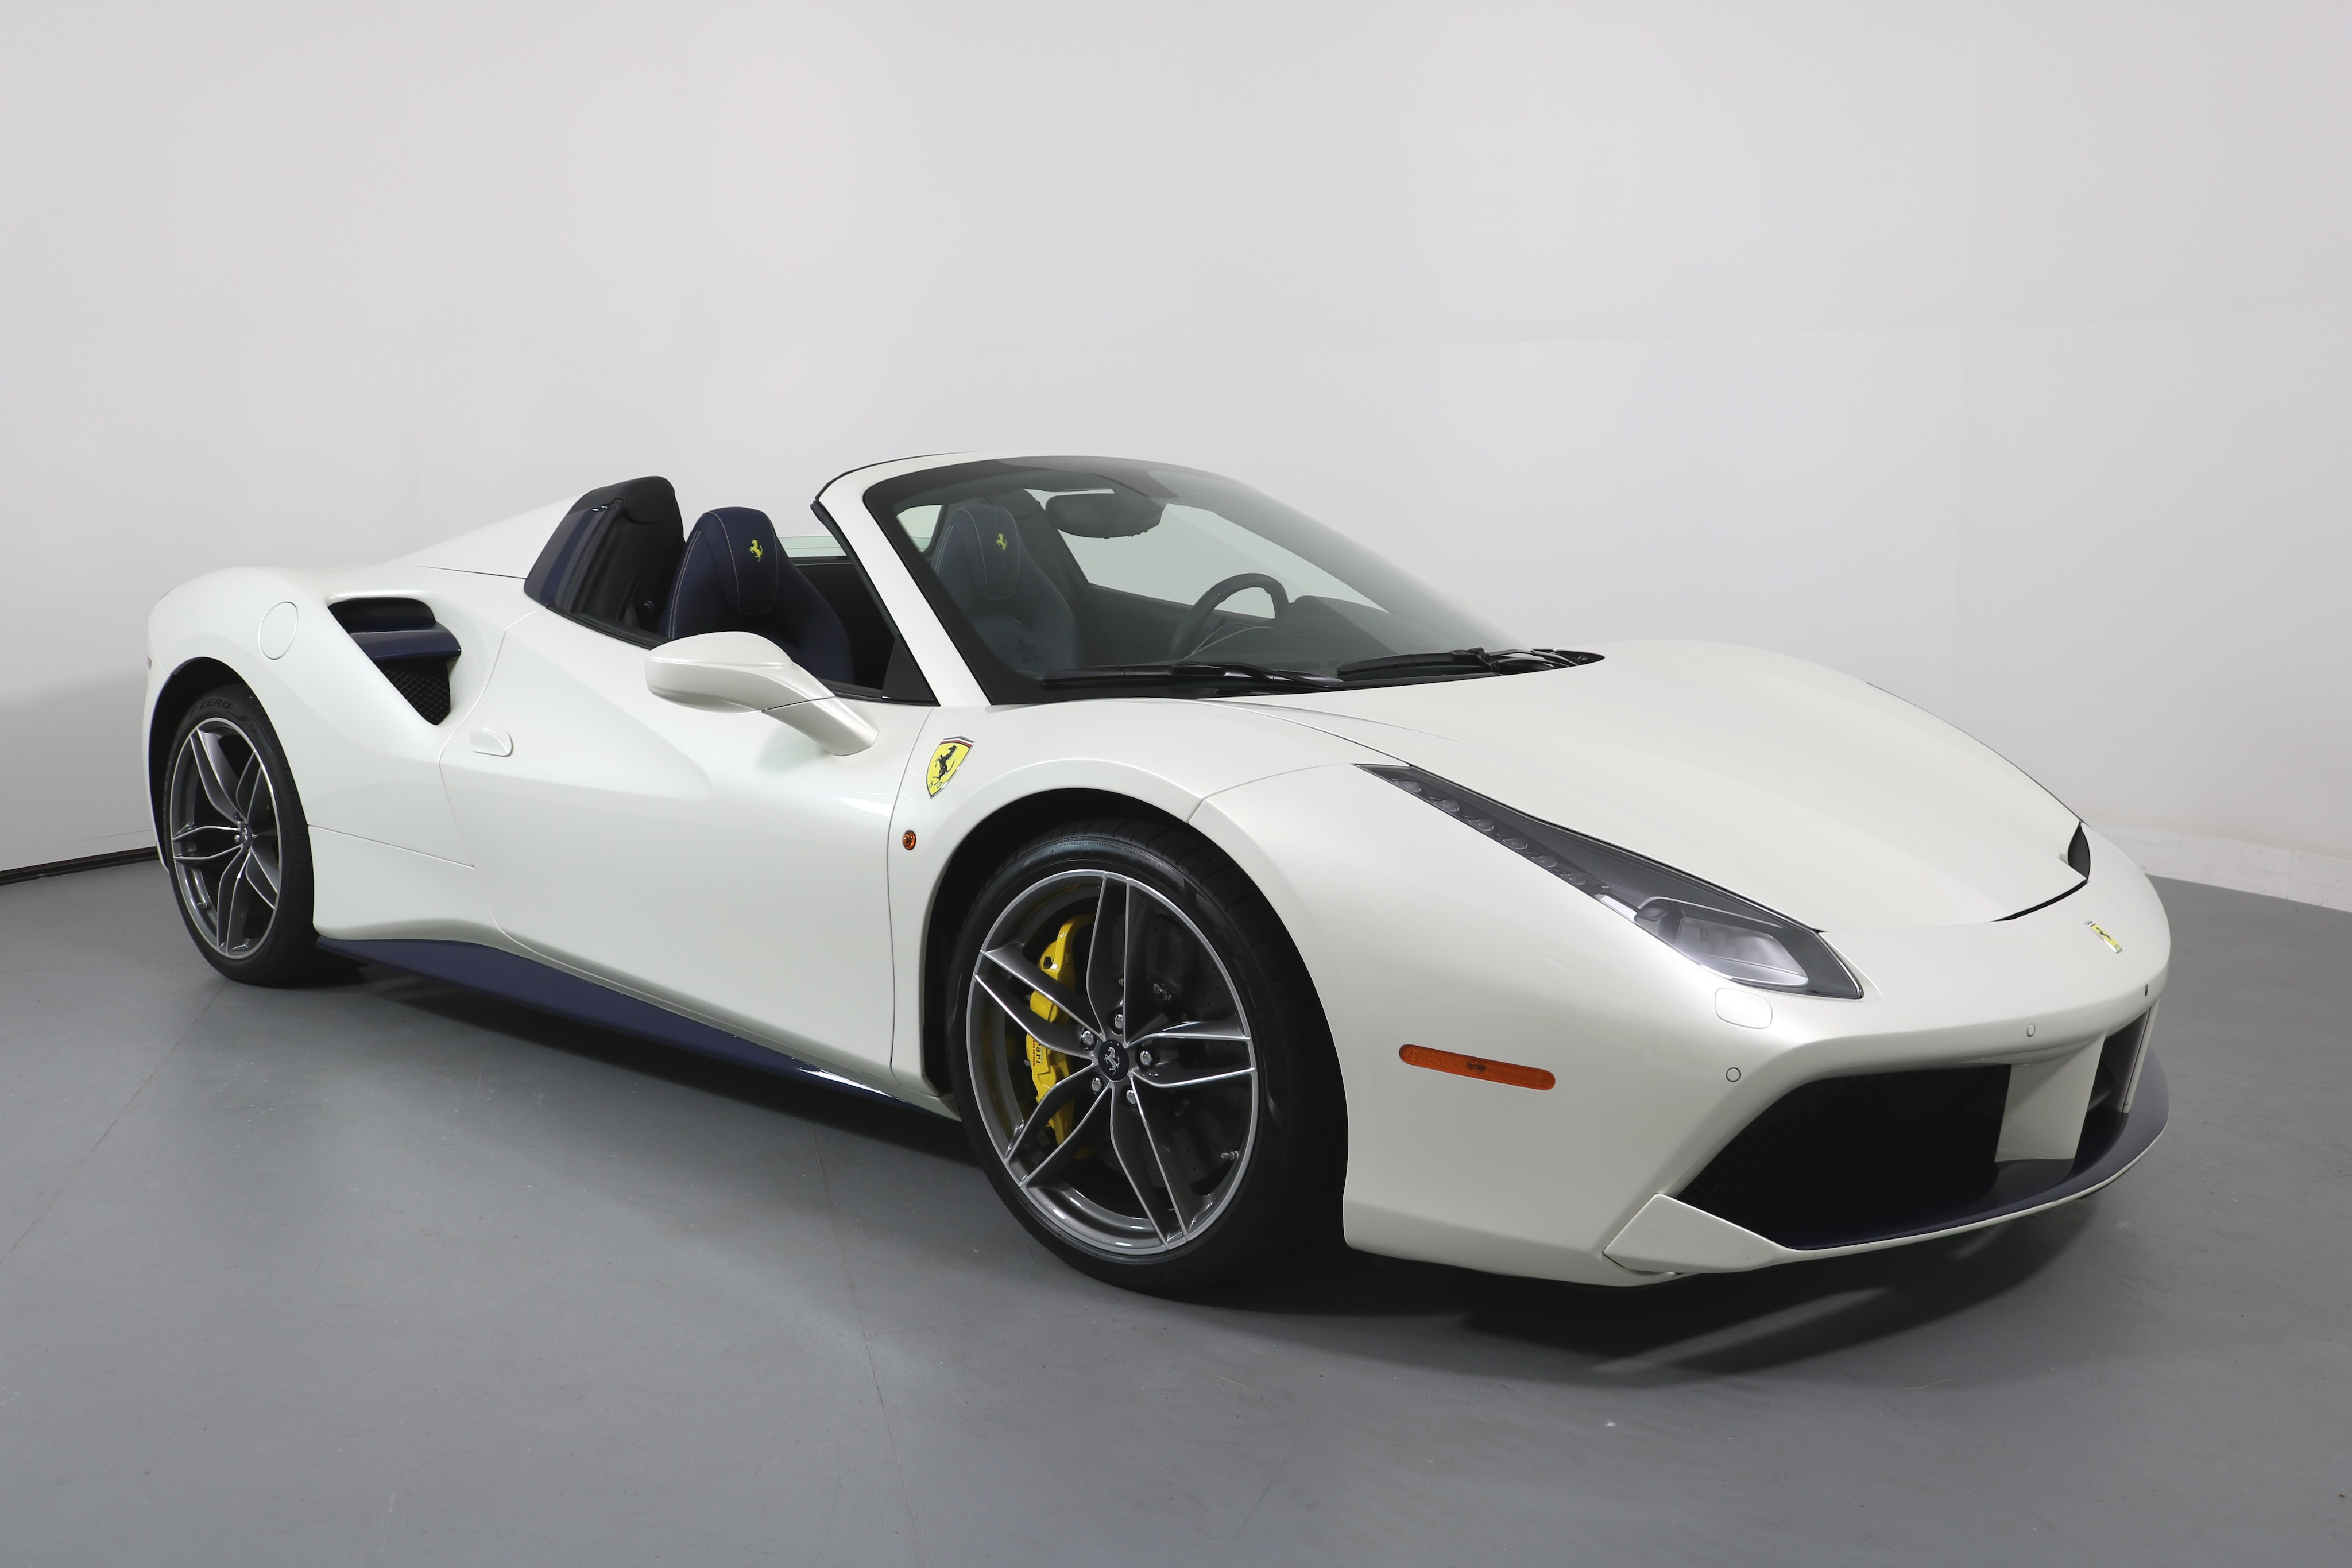 Used 2017 Ferrari 488 Spider San Francisco Ca Zff80ama8h0226733 Serving The Bay Area Mill Valley San Rafael Redwood City And Silicon Valley